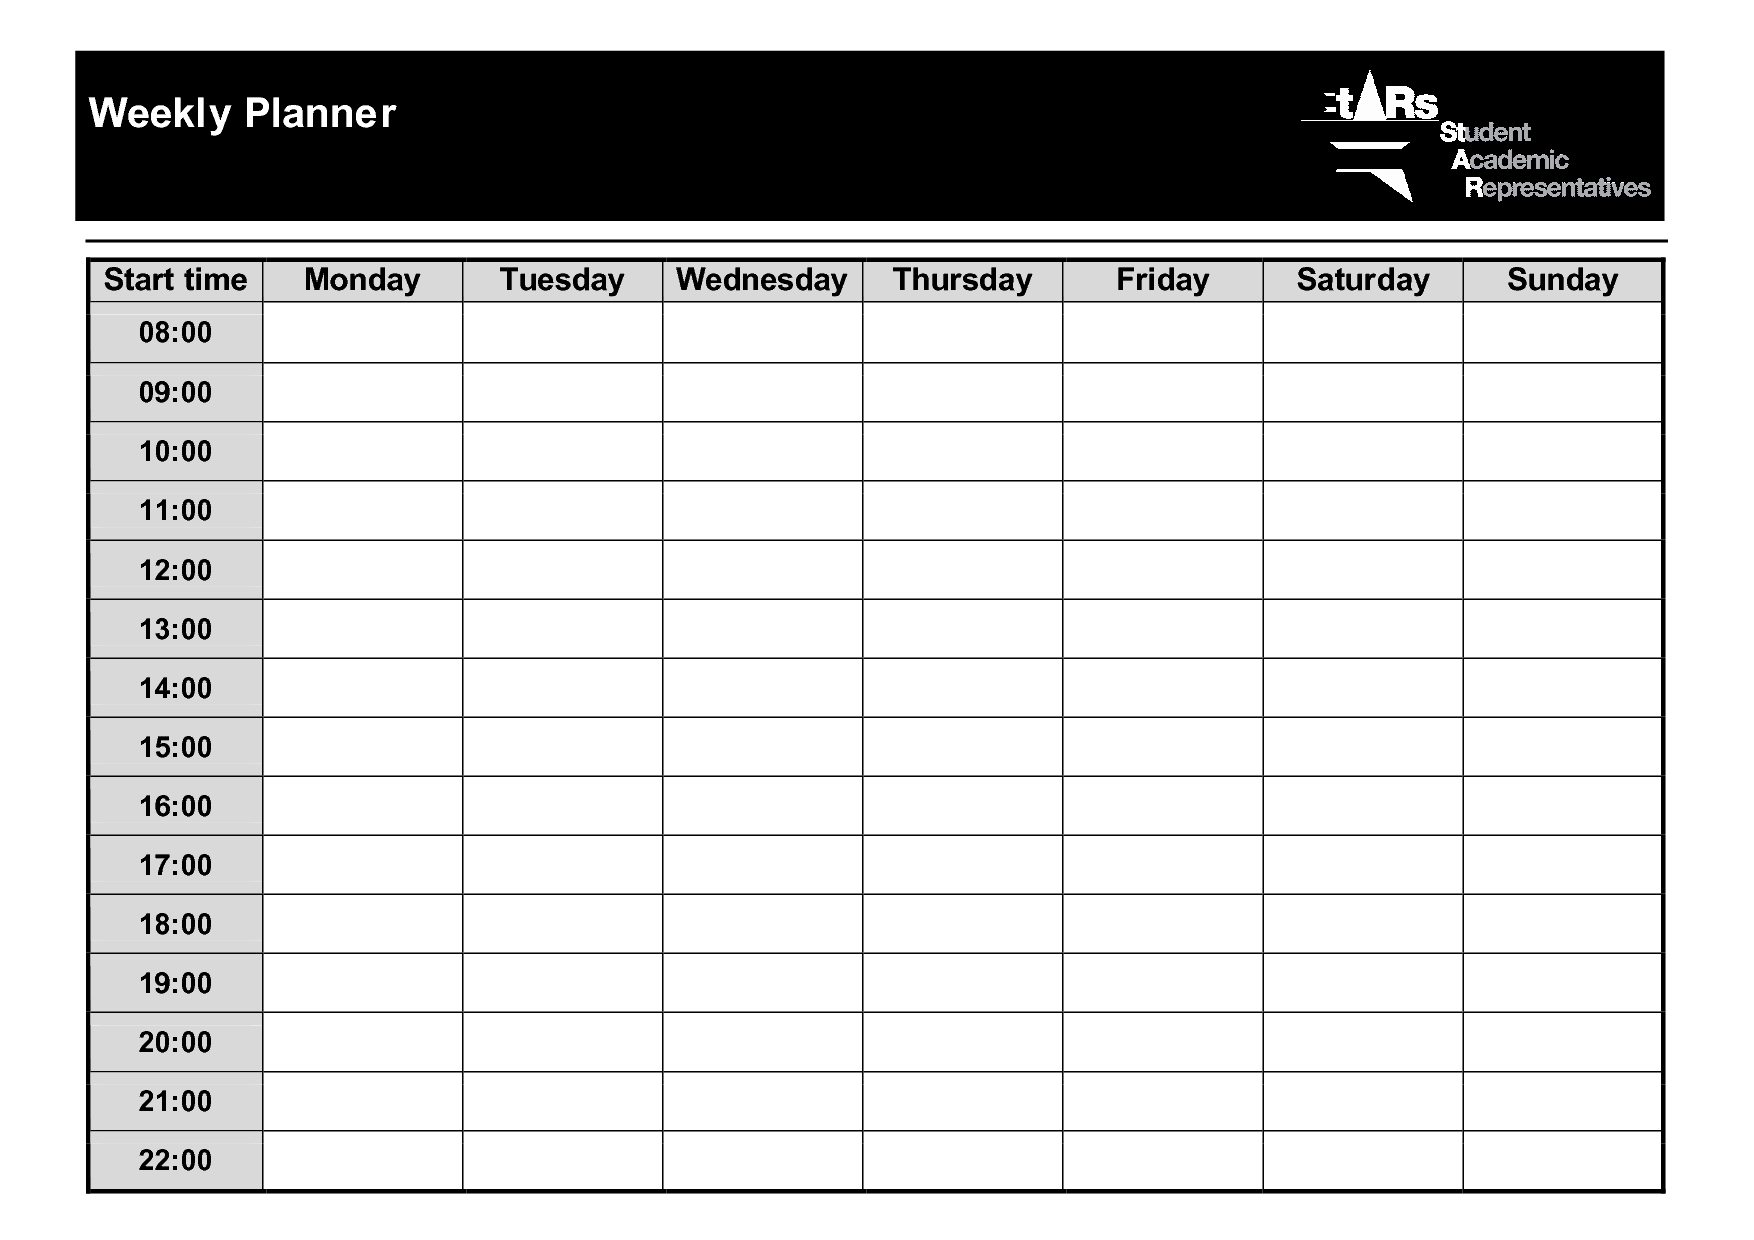 Weeklyplannertemplatepdf With Images Weekly Planner